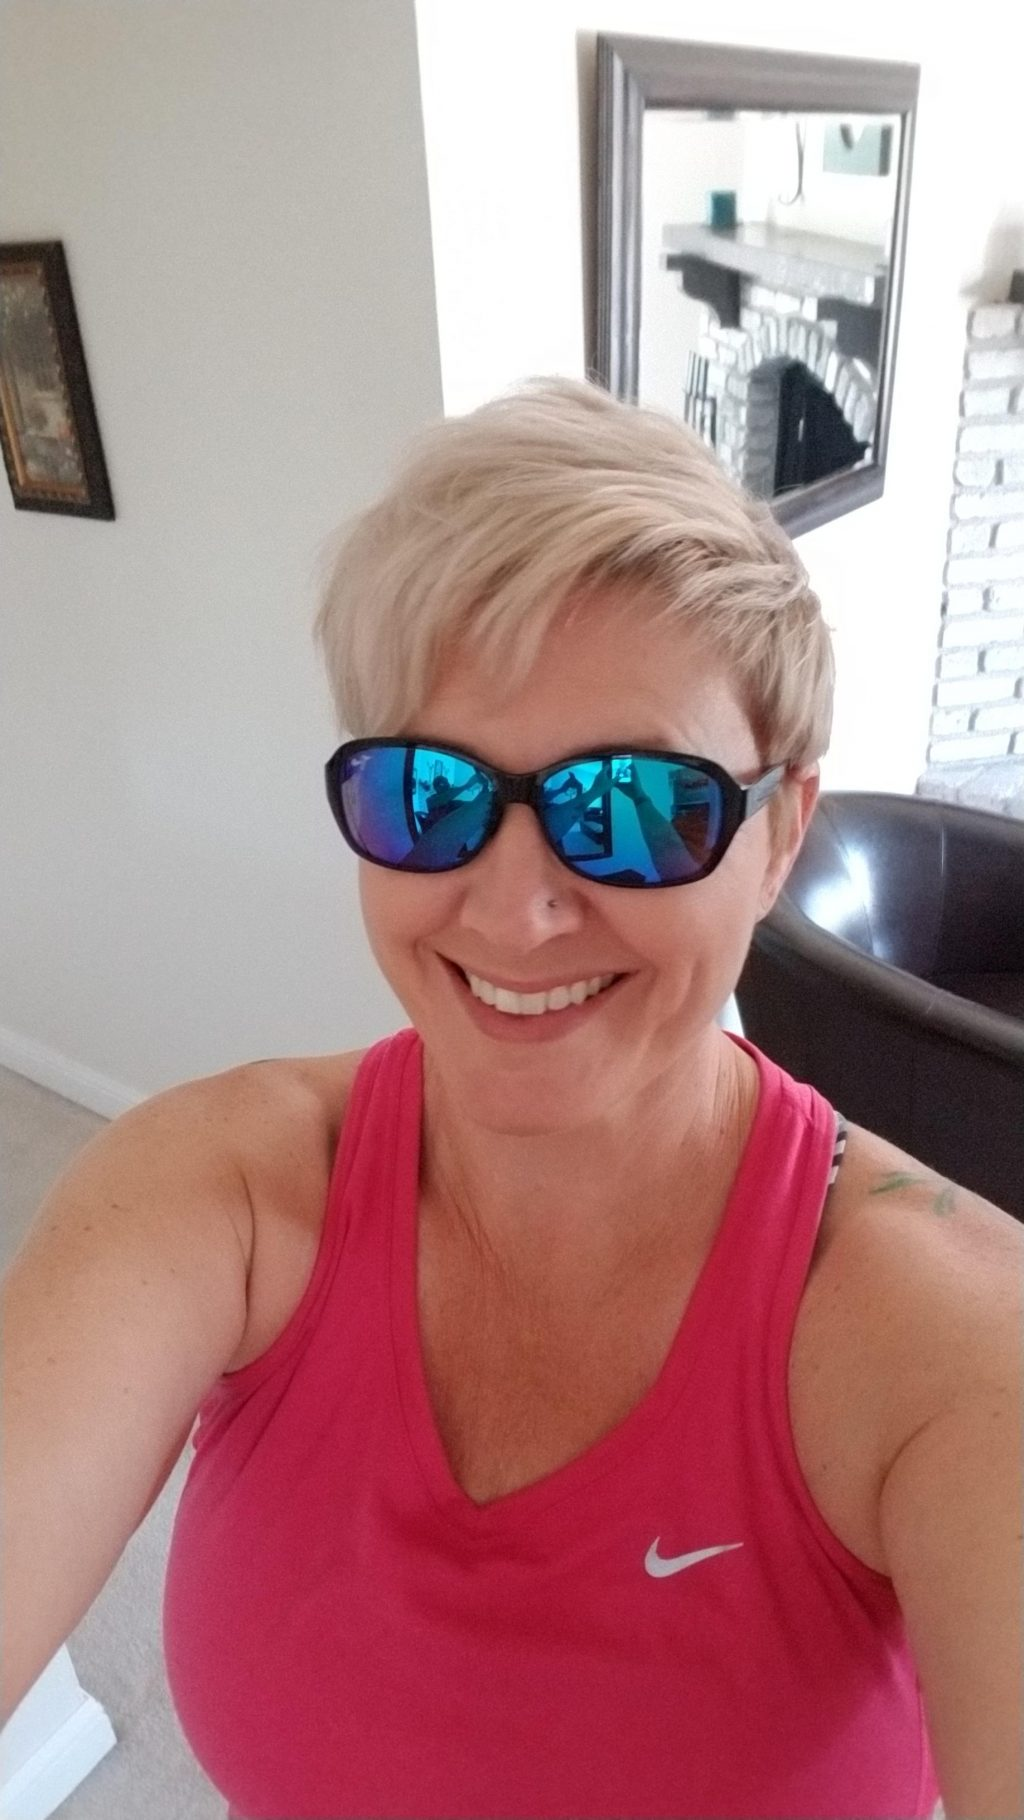 Personal Trainer Valencia, California - Kellie Waters